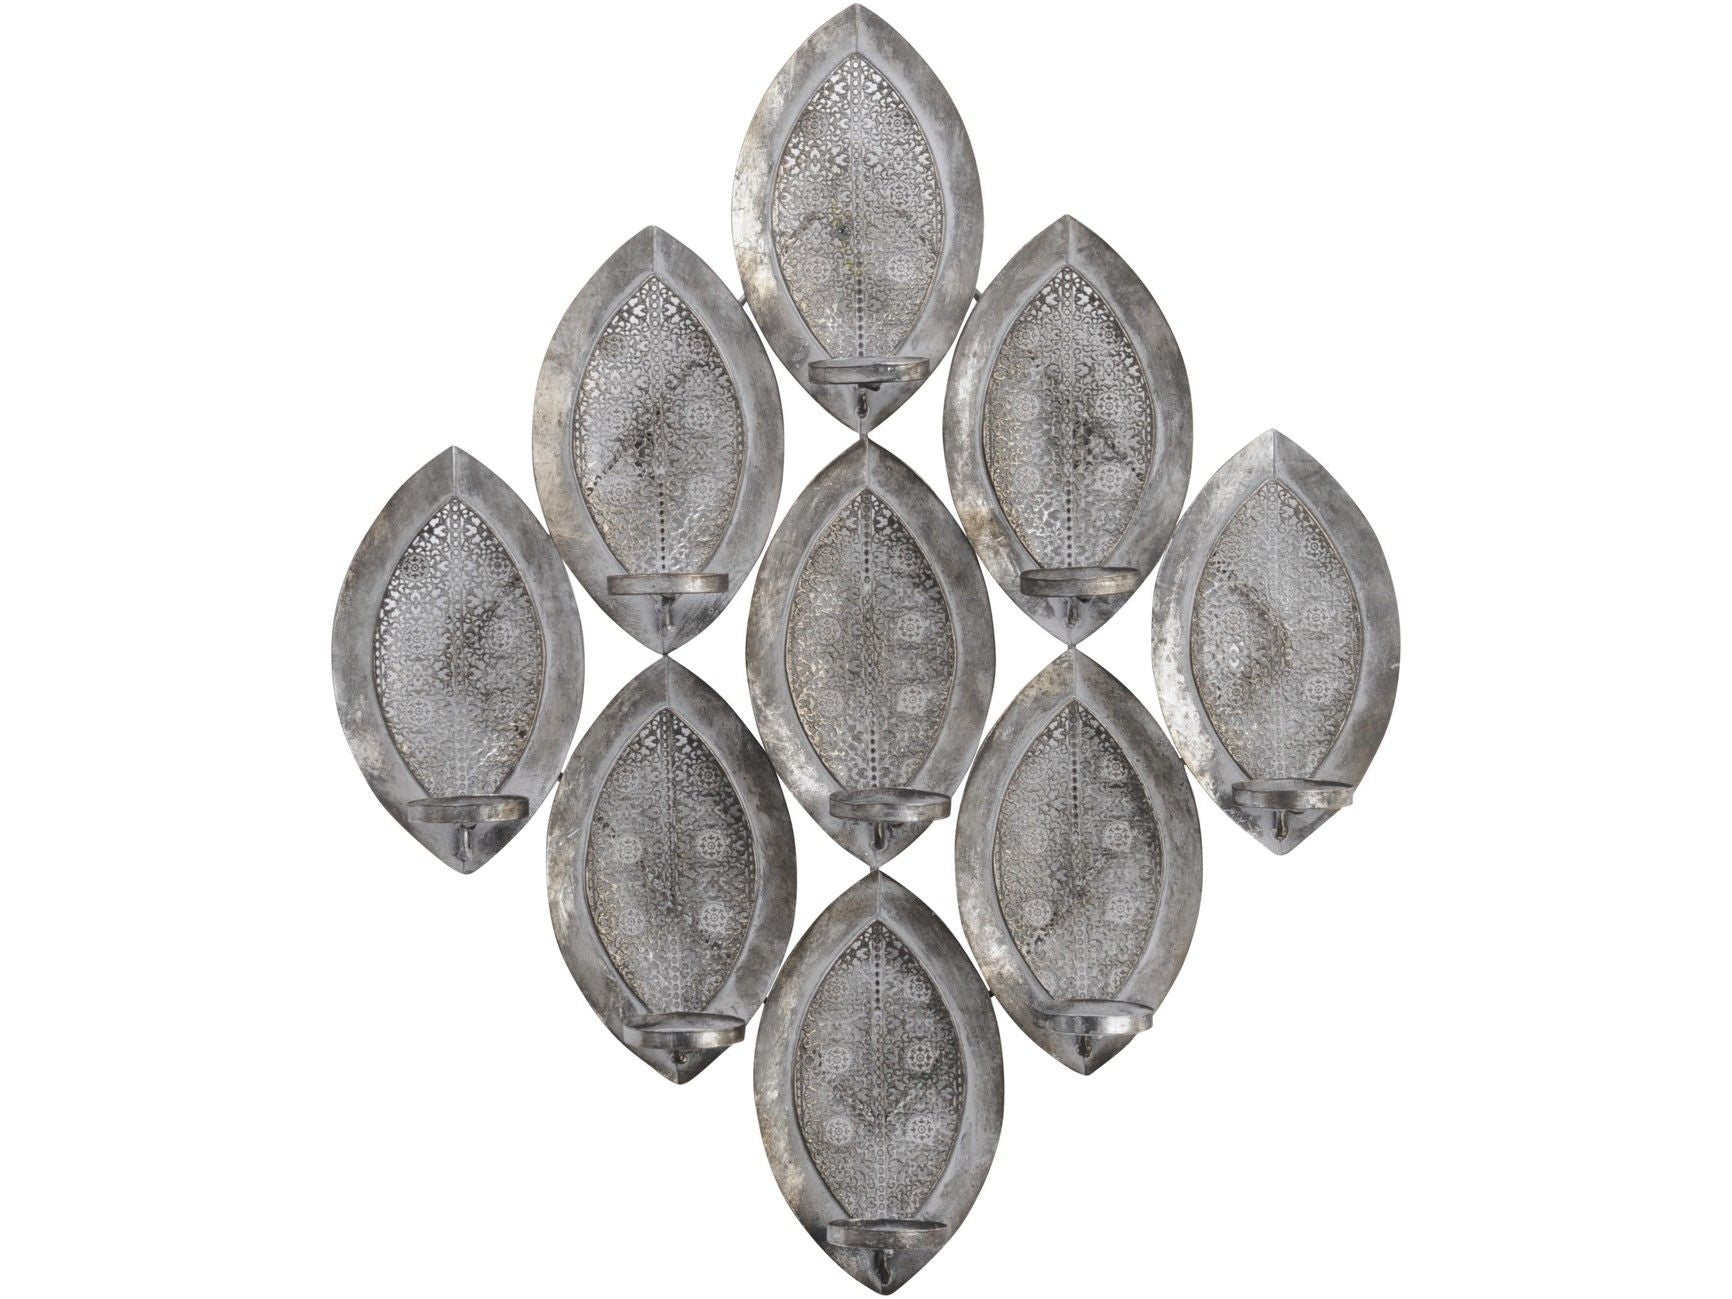 Filigree Multiple Candle Wall Sconce - Global Trading